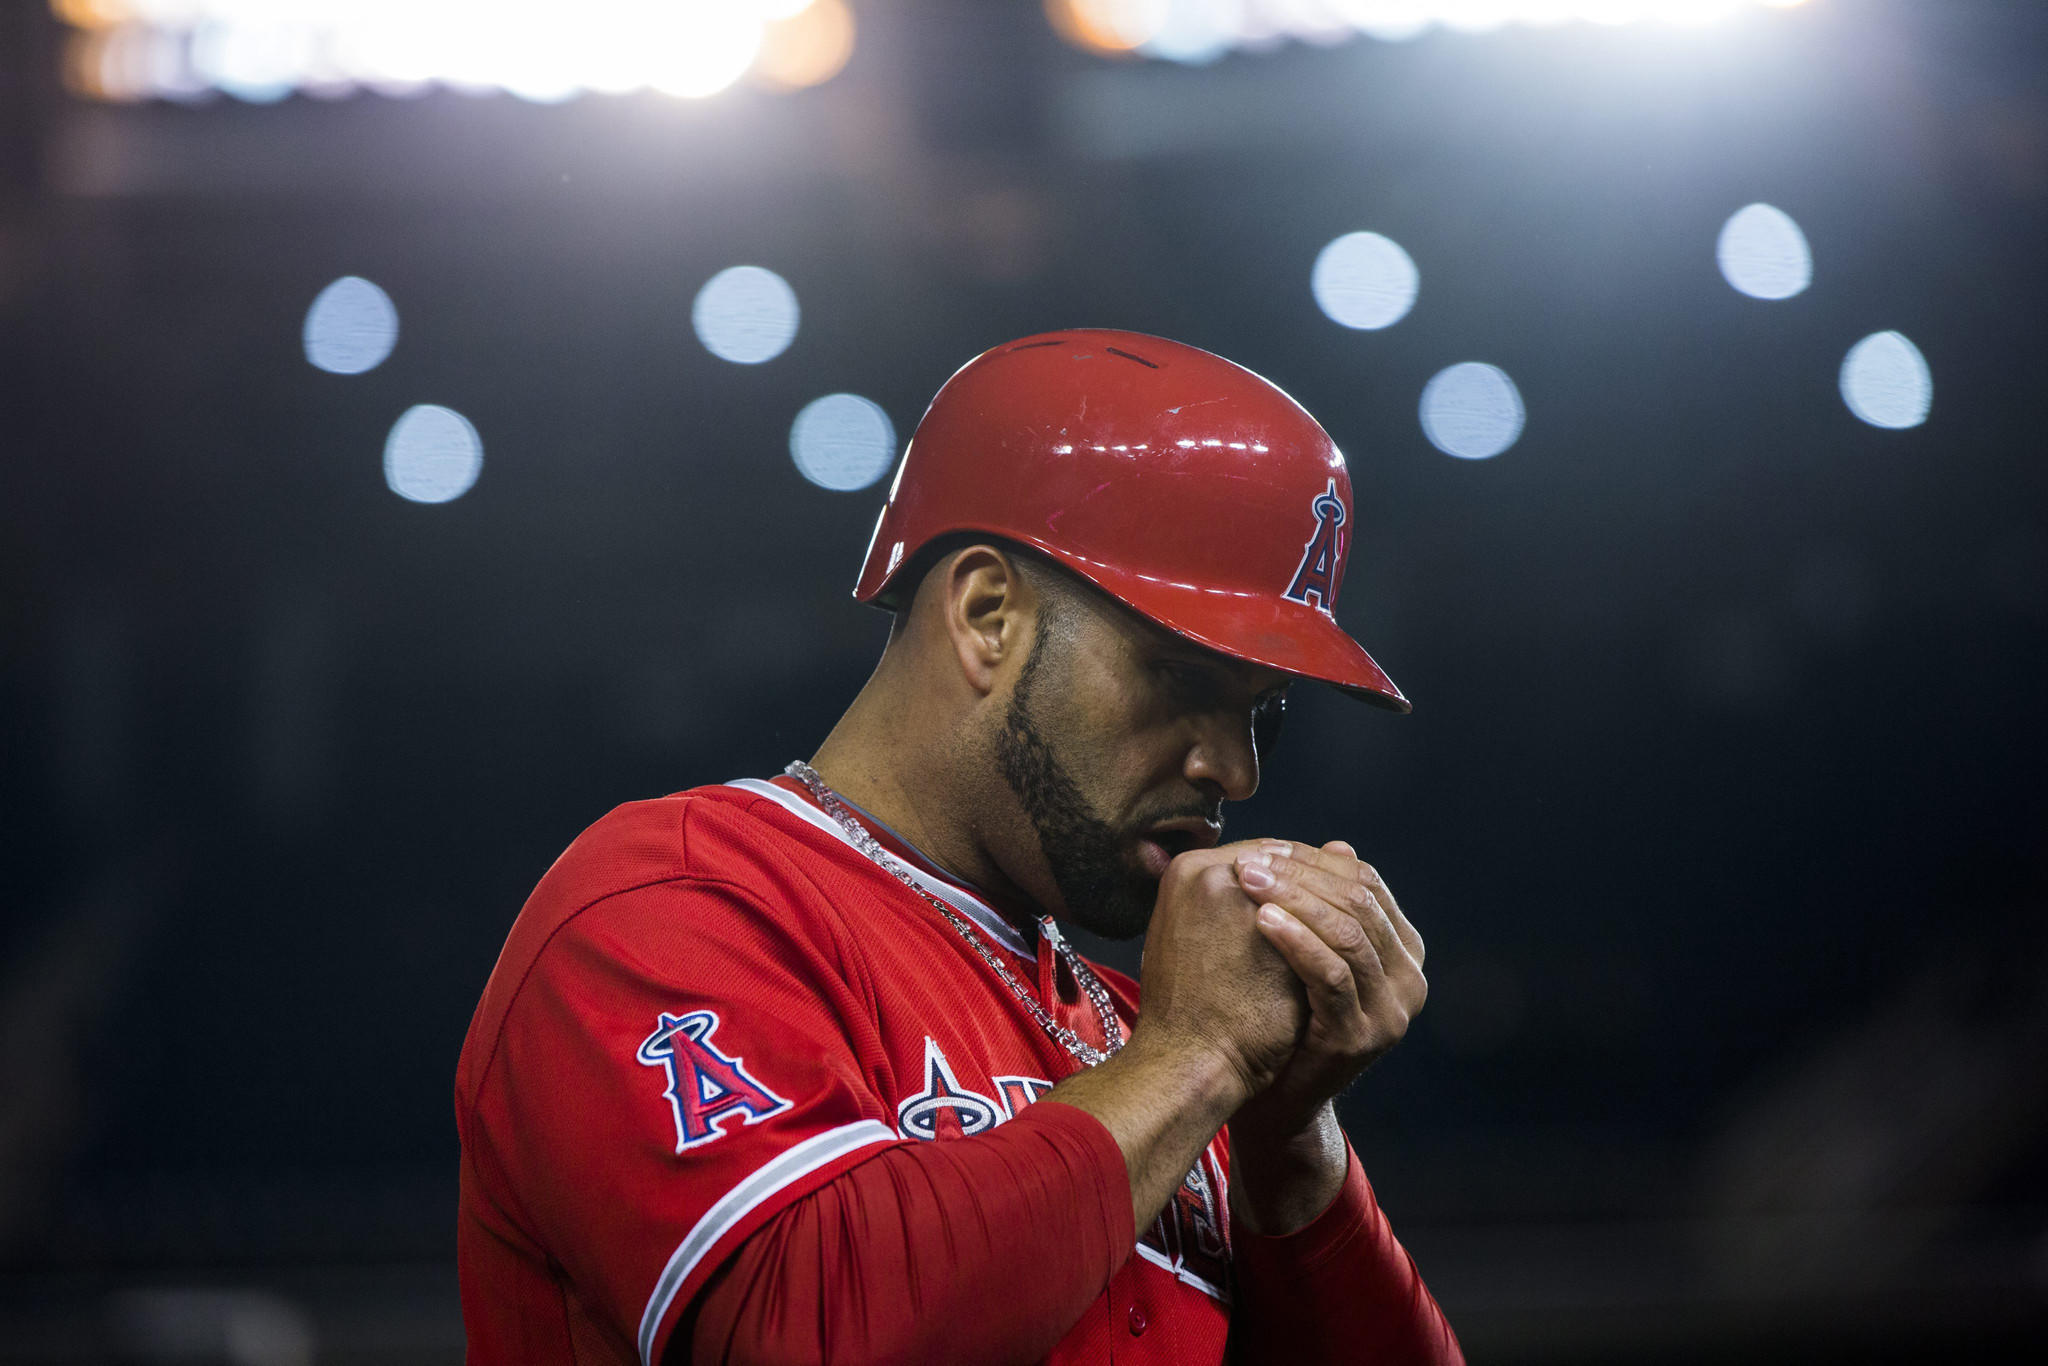 Angels slugger Albert Pujols has established himself as one of the best power-hitters of his era, but can he lead the Angels to a World Series title?